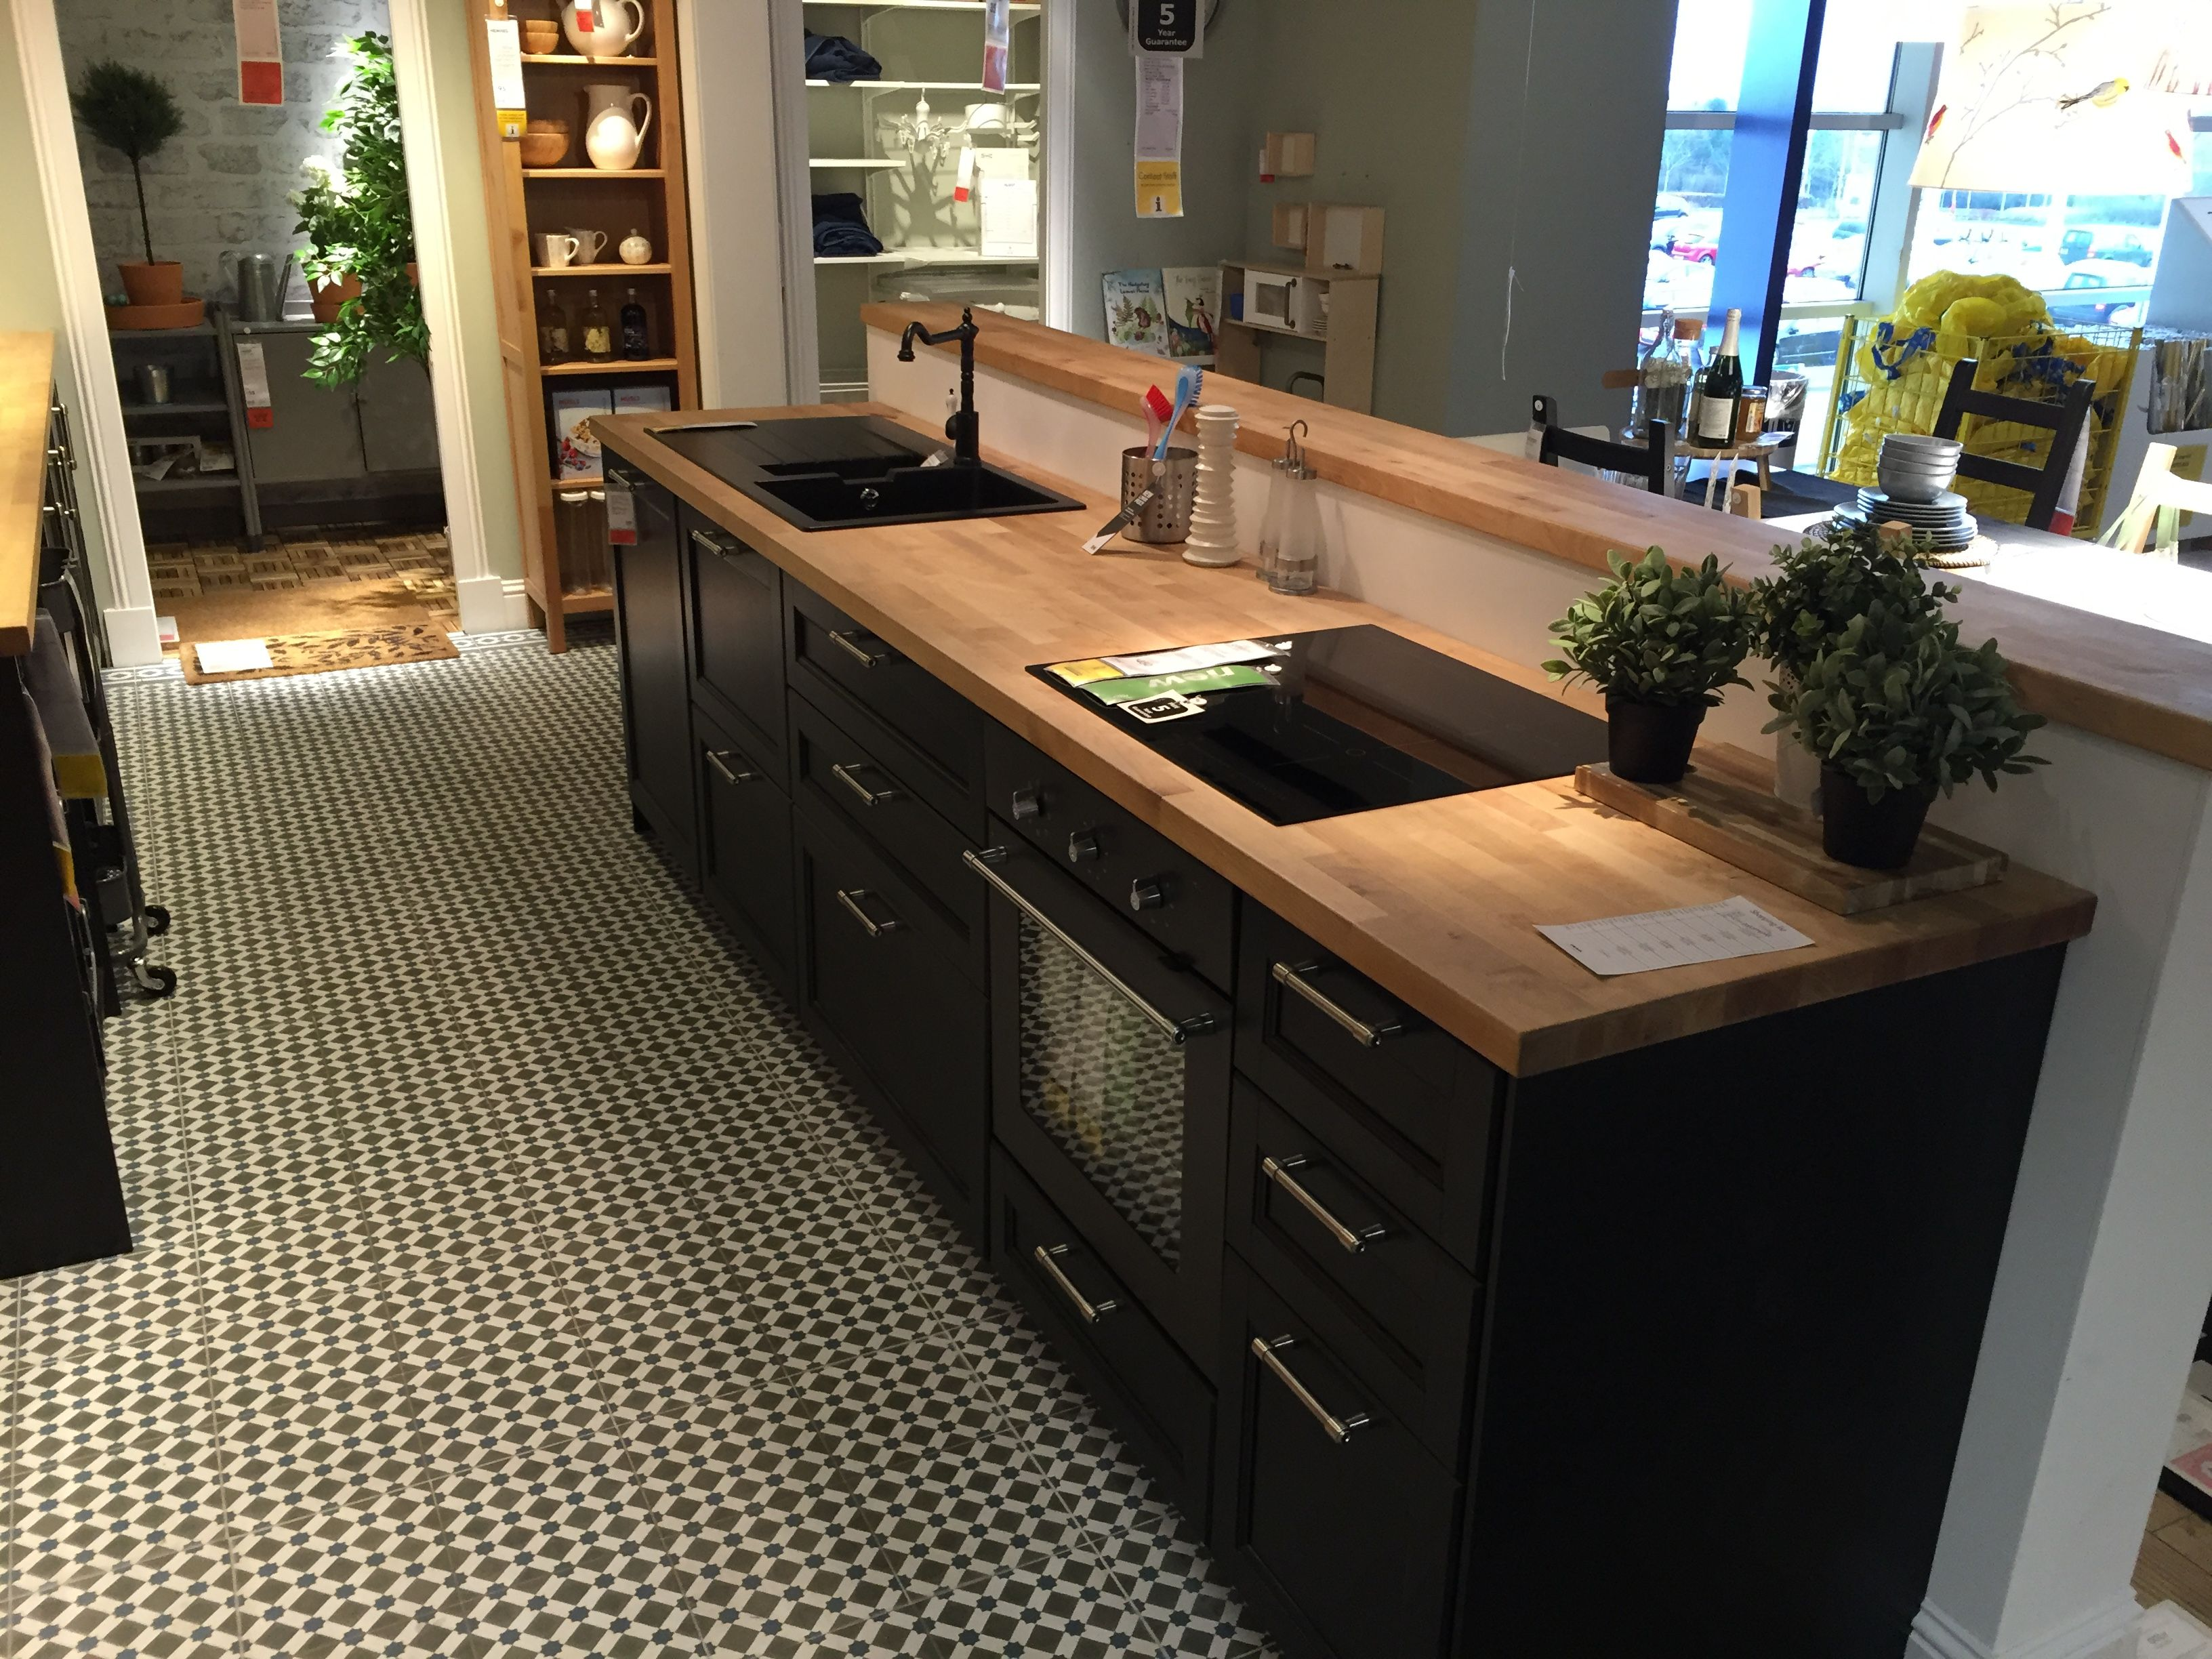 Ikea laxarby kitchen d co pinterest cuisines for Cuisine laxarby